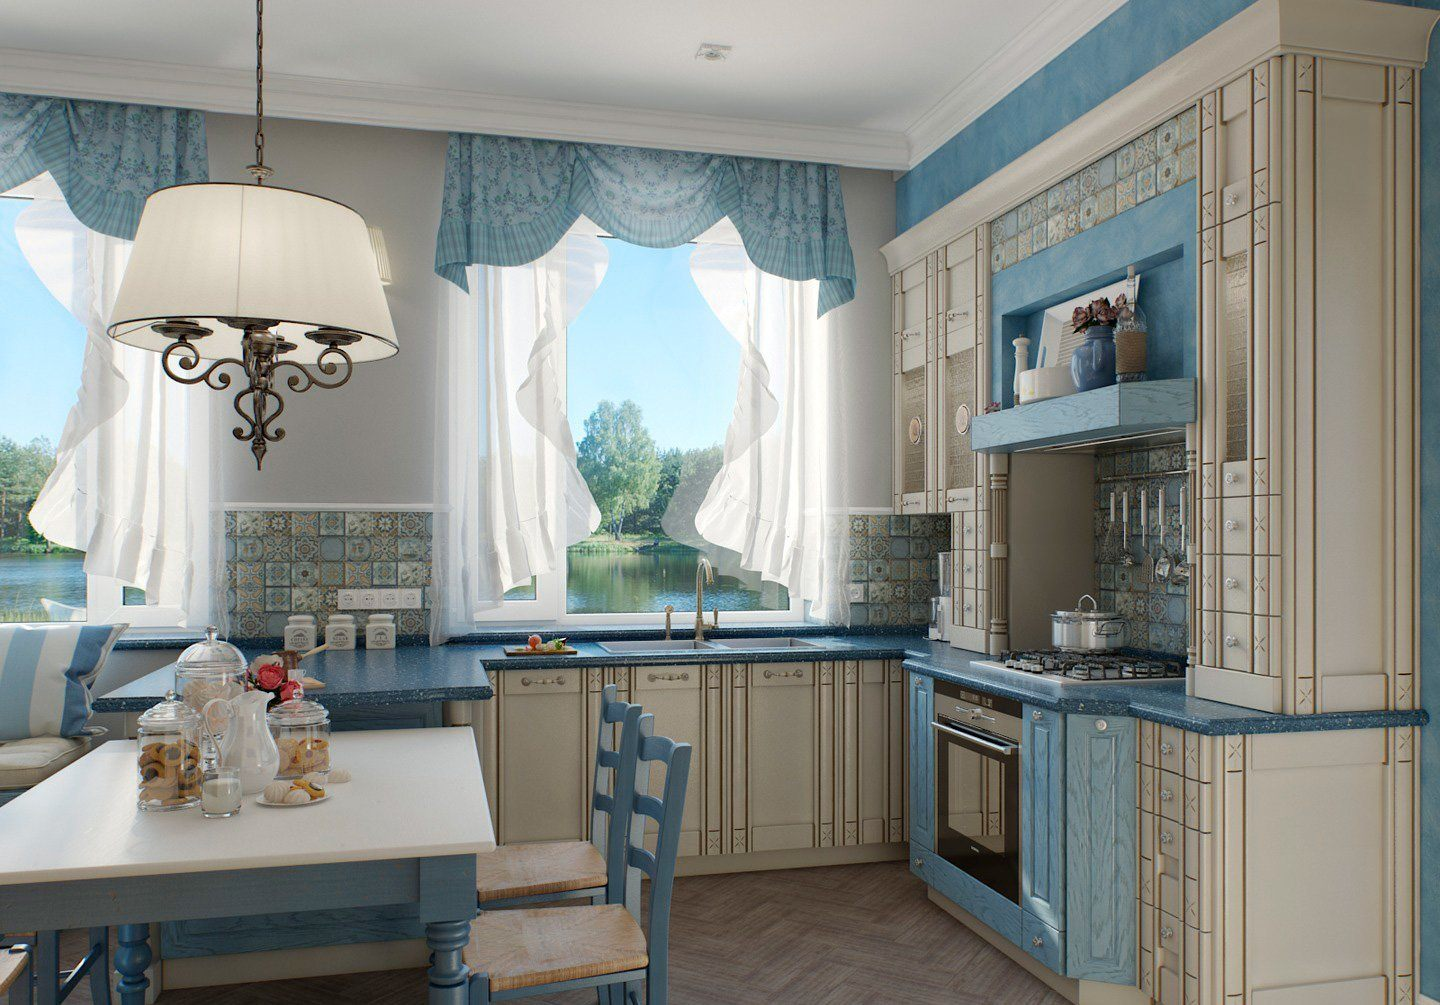 Blue touch in the classic styled kitchen with carved facades